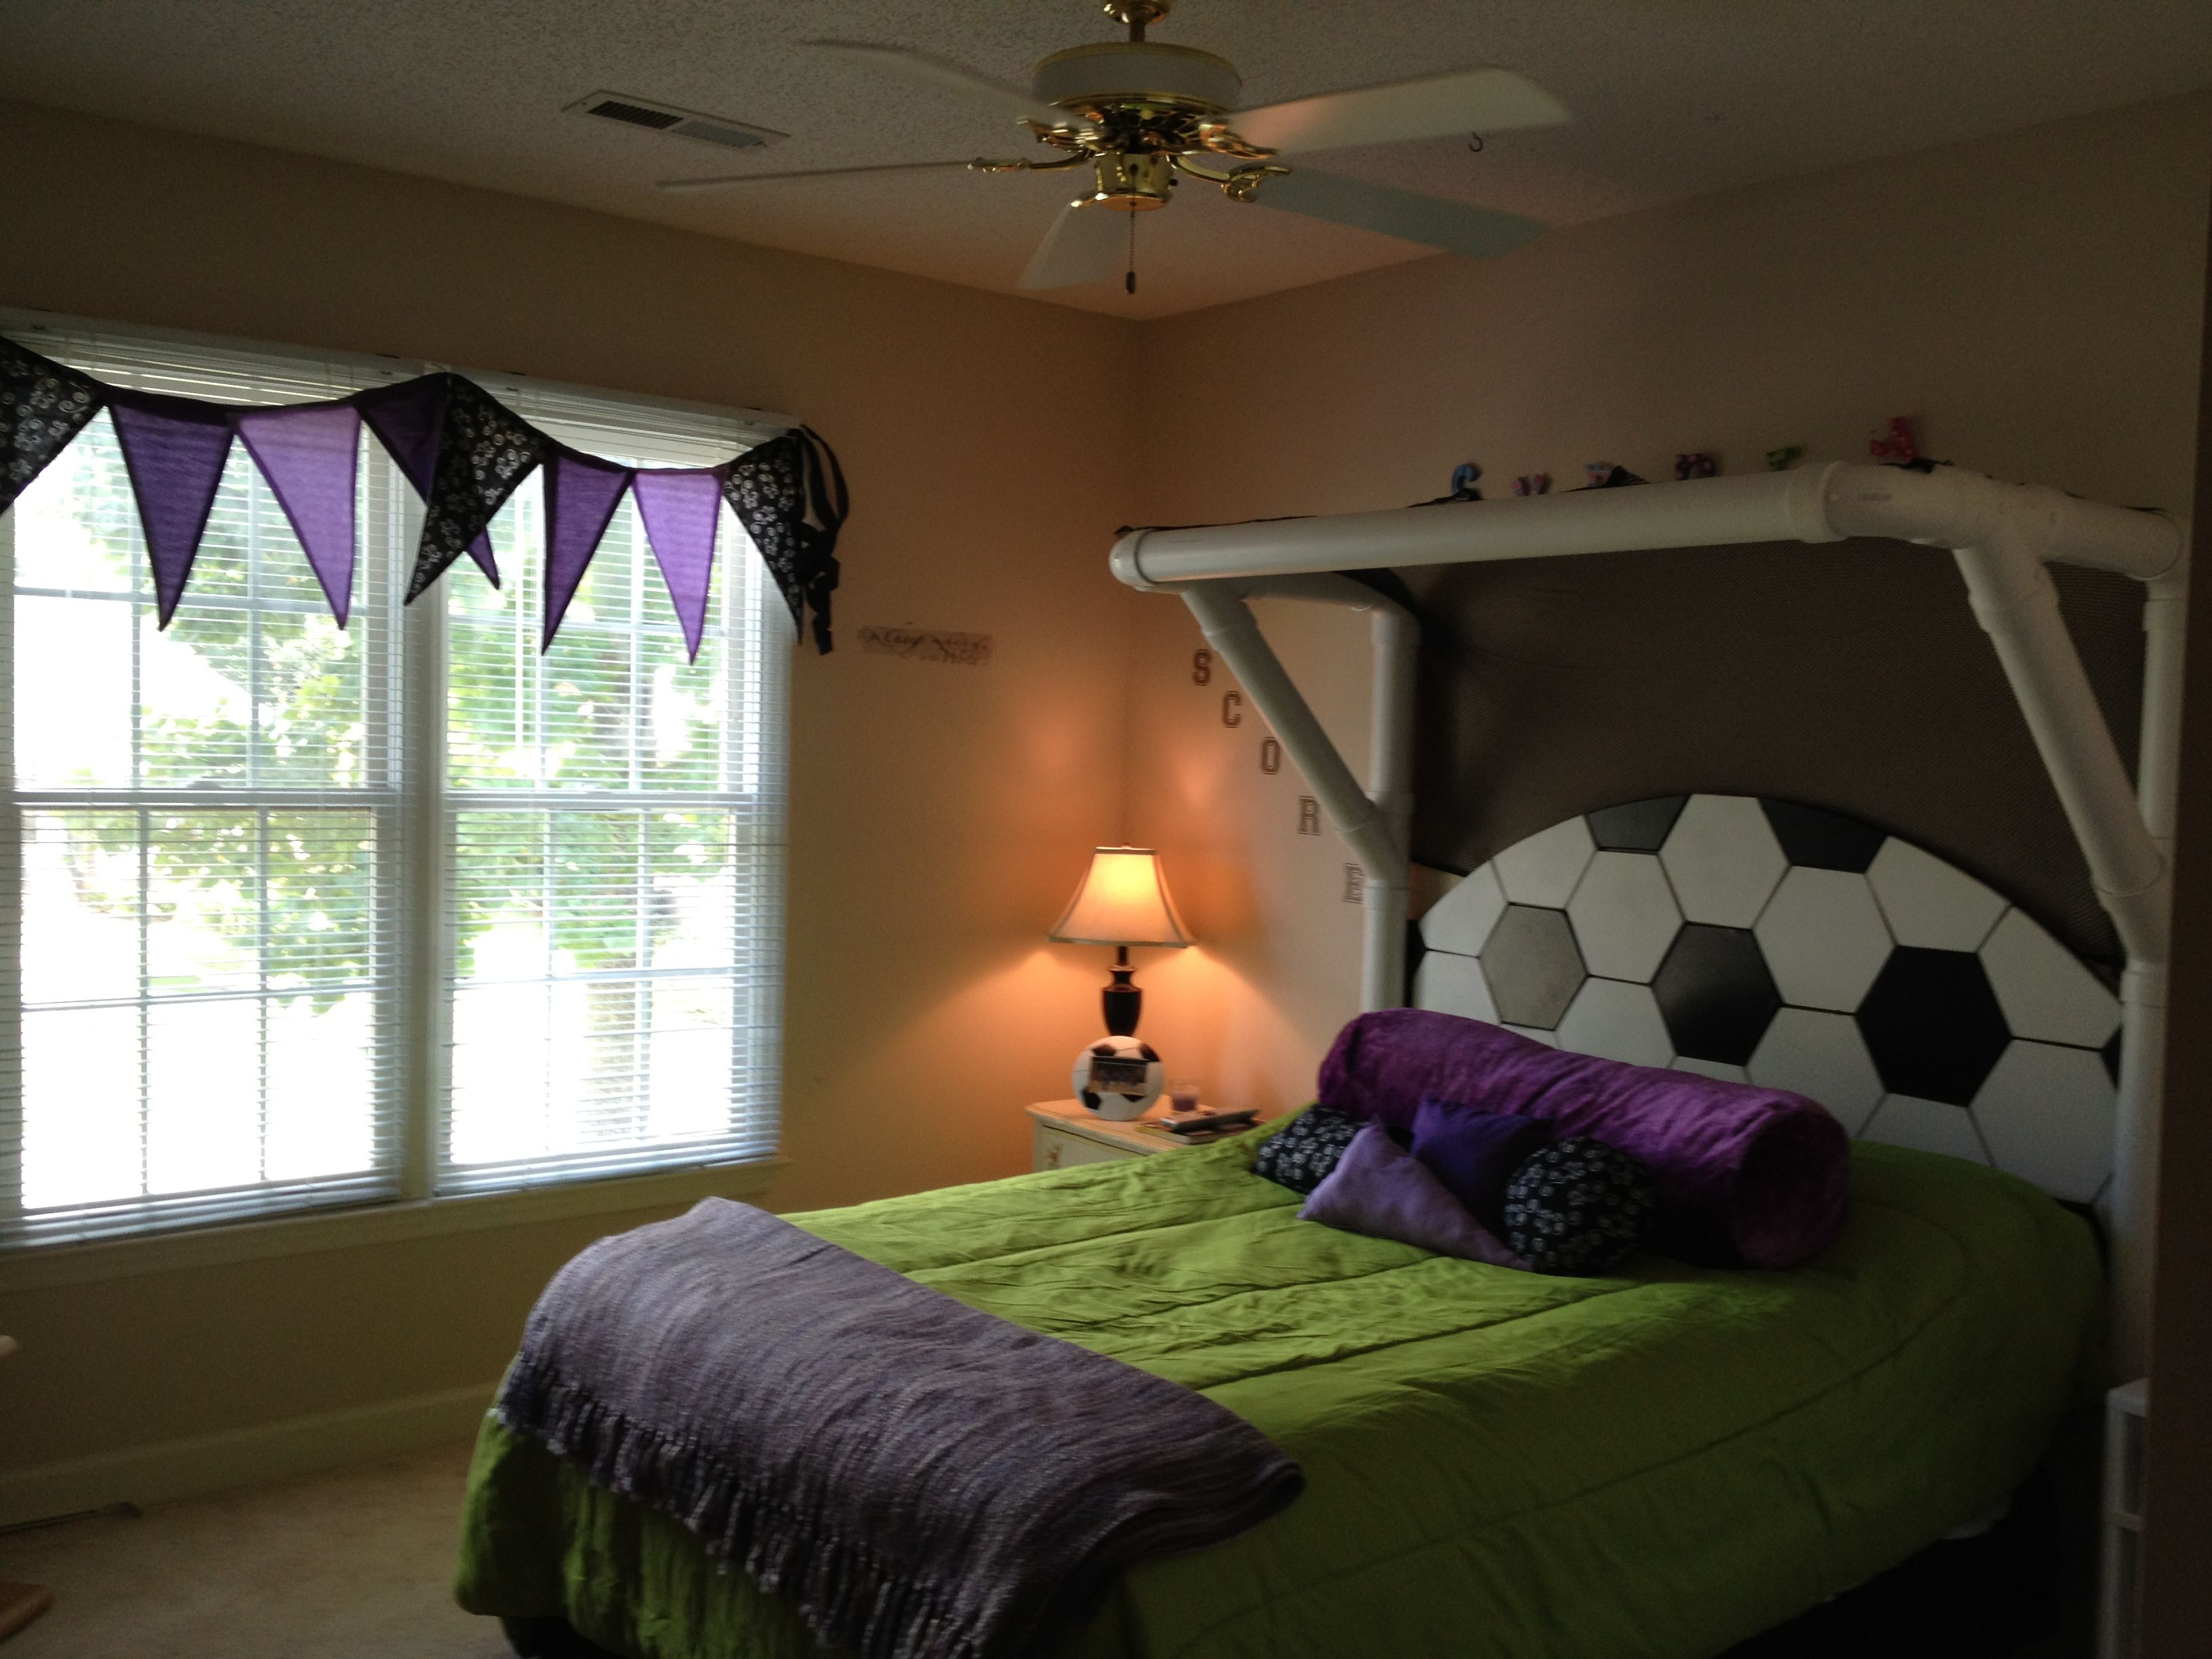 Use This Concept For Cody Baseball Kids Soccer Bedroom Love Camden